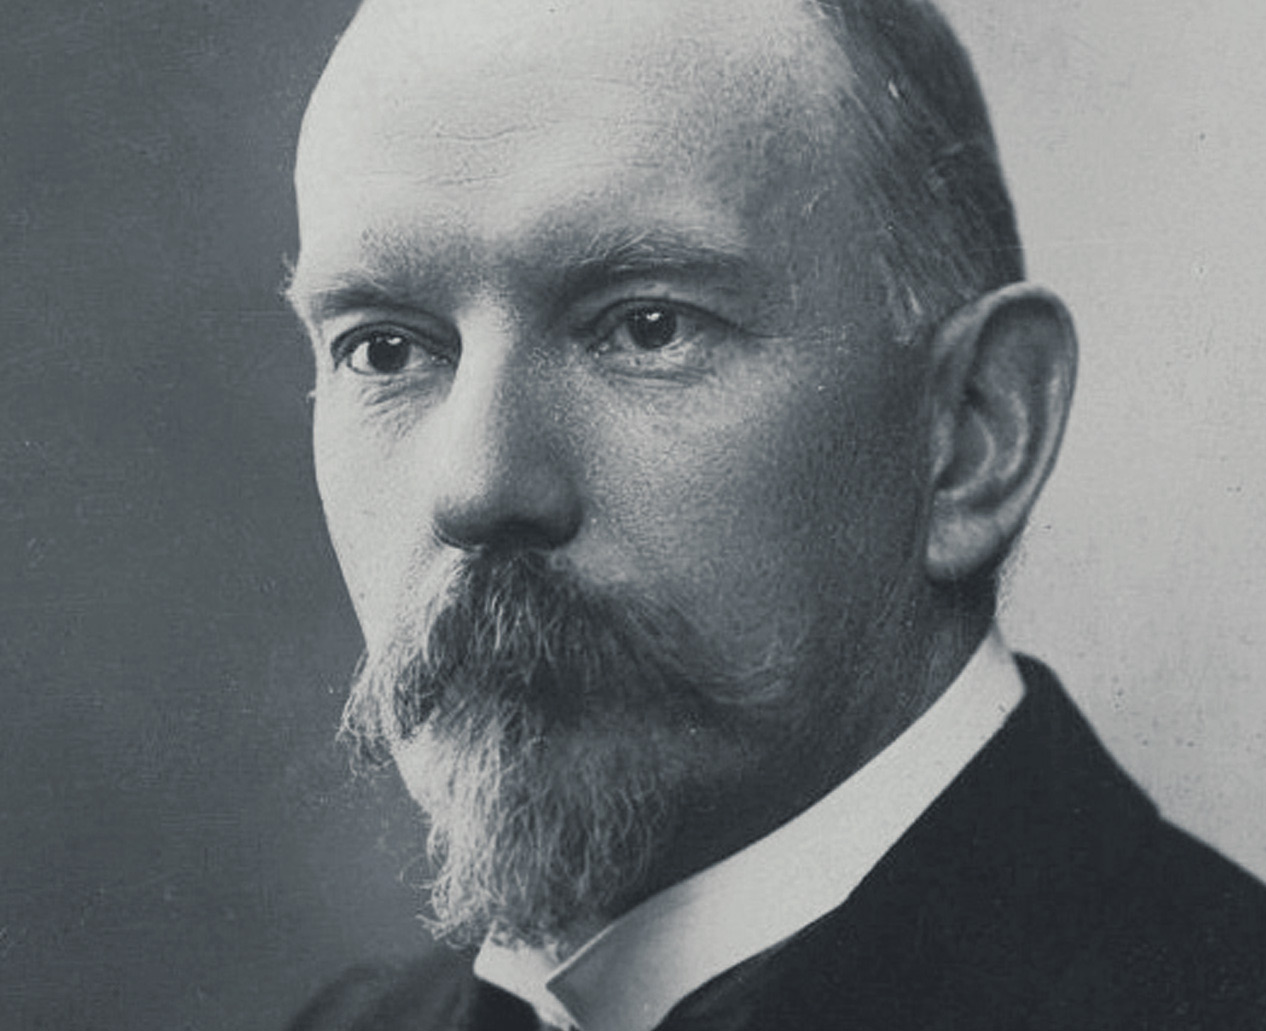 Jules Renard  was a  French author  most known for his works,  Poil de Carotte  and  Les Histoires Naturelles .      Image Credit: lalangostaliteraria.com